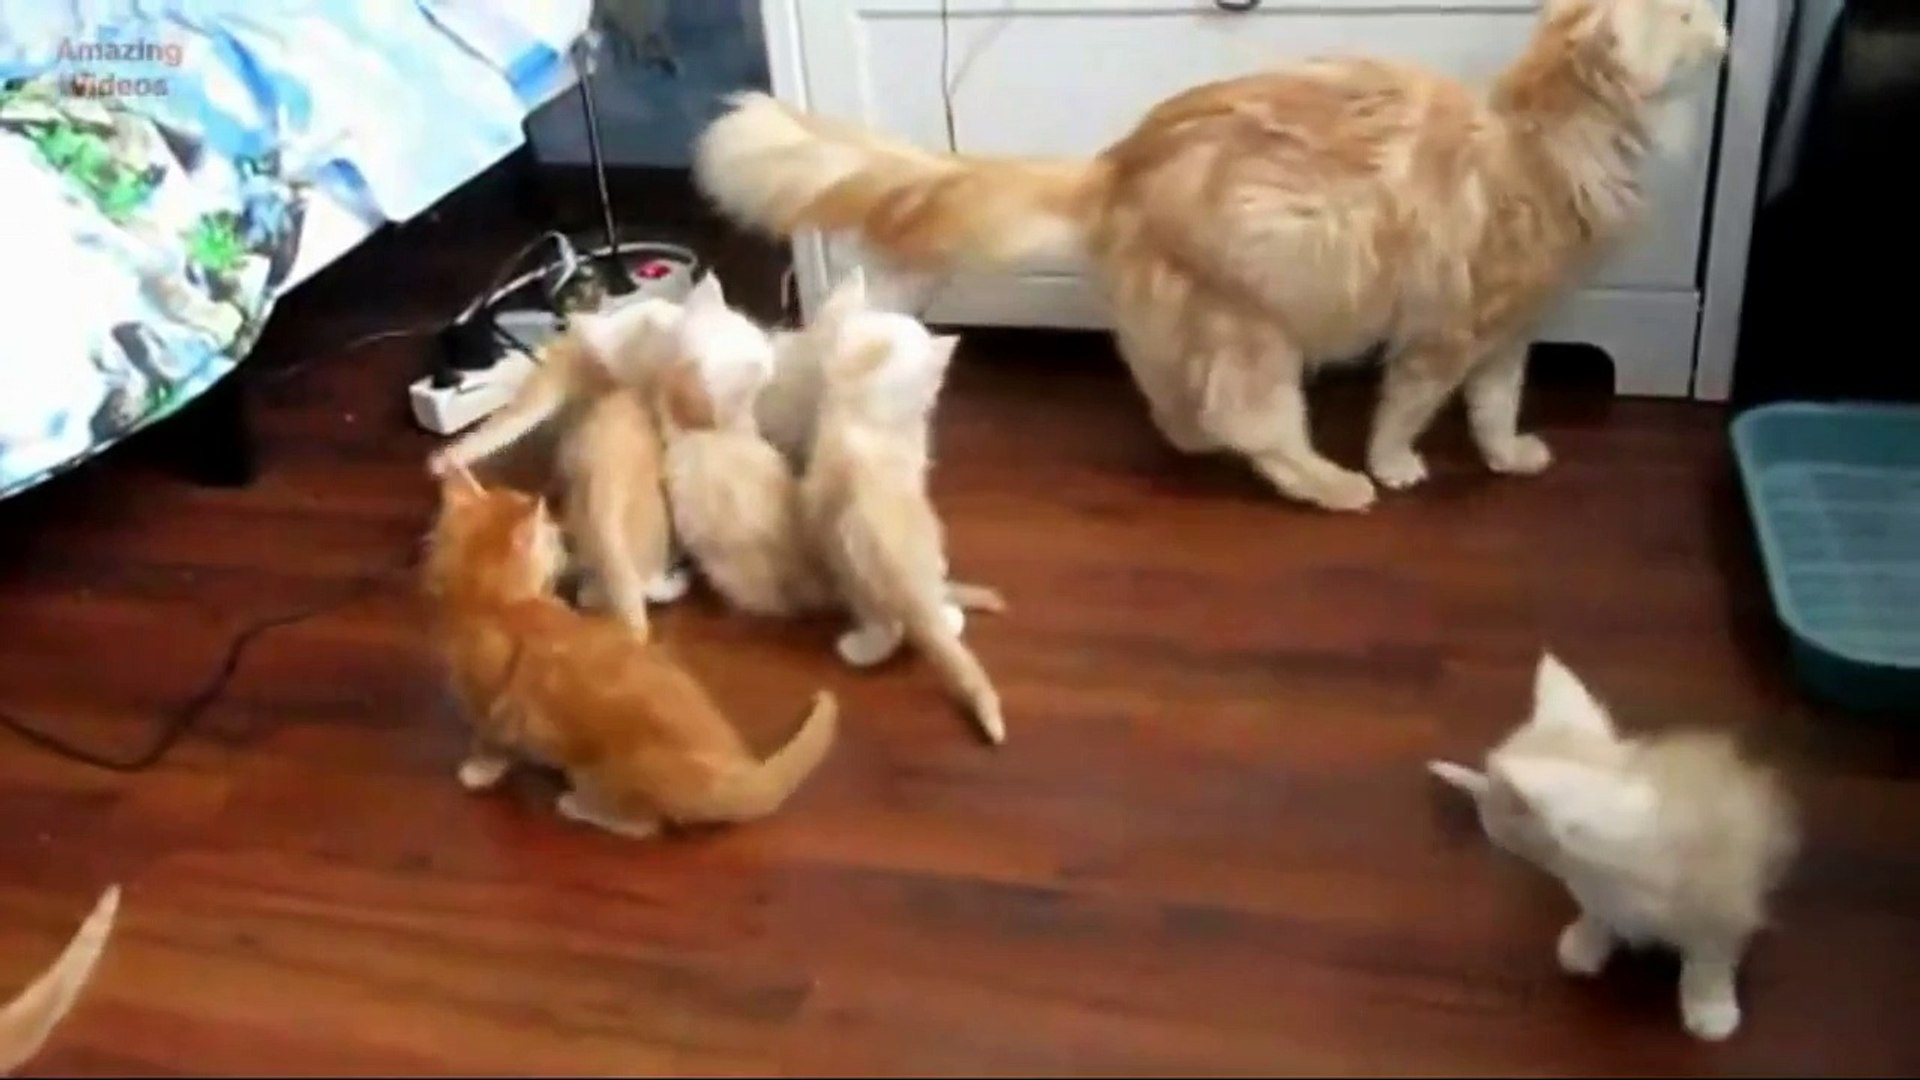 Very Funny Cats Videos |Funny Cats Compilation 2016 HD| Funny Cats Videos Youtube